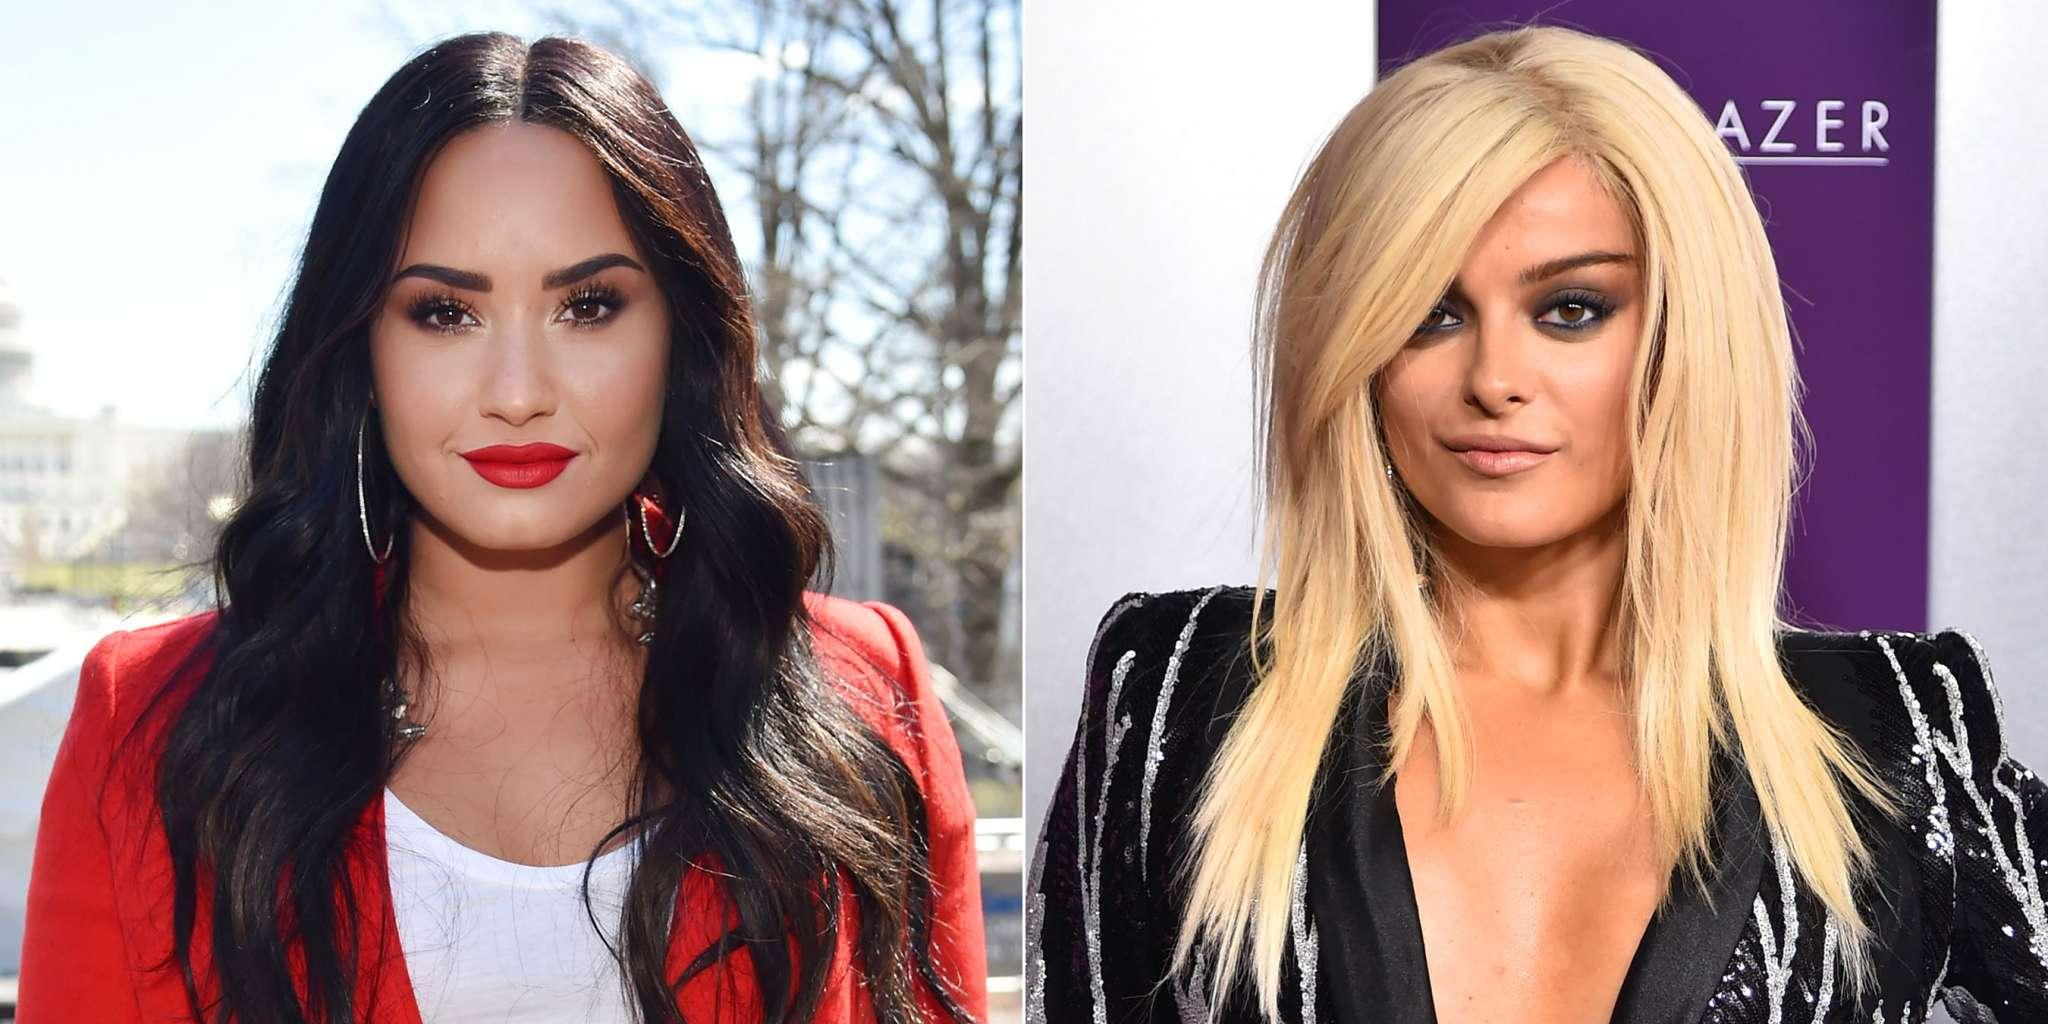 Demi Lovato Shows Support To Bebe Rexha After Slamming Designers For Fat-Shaming Her!